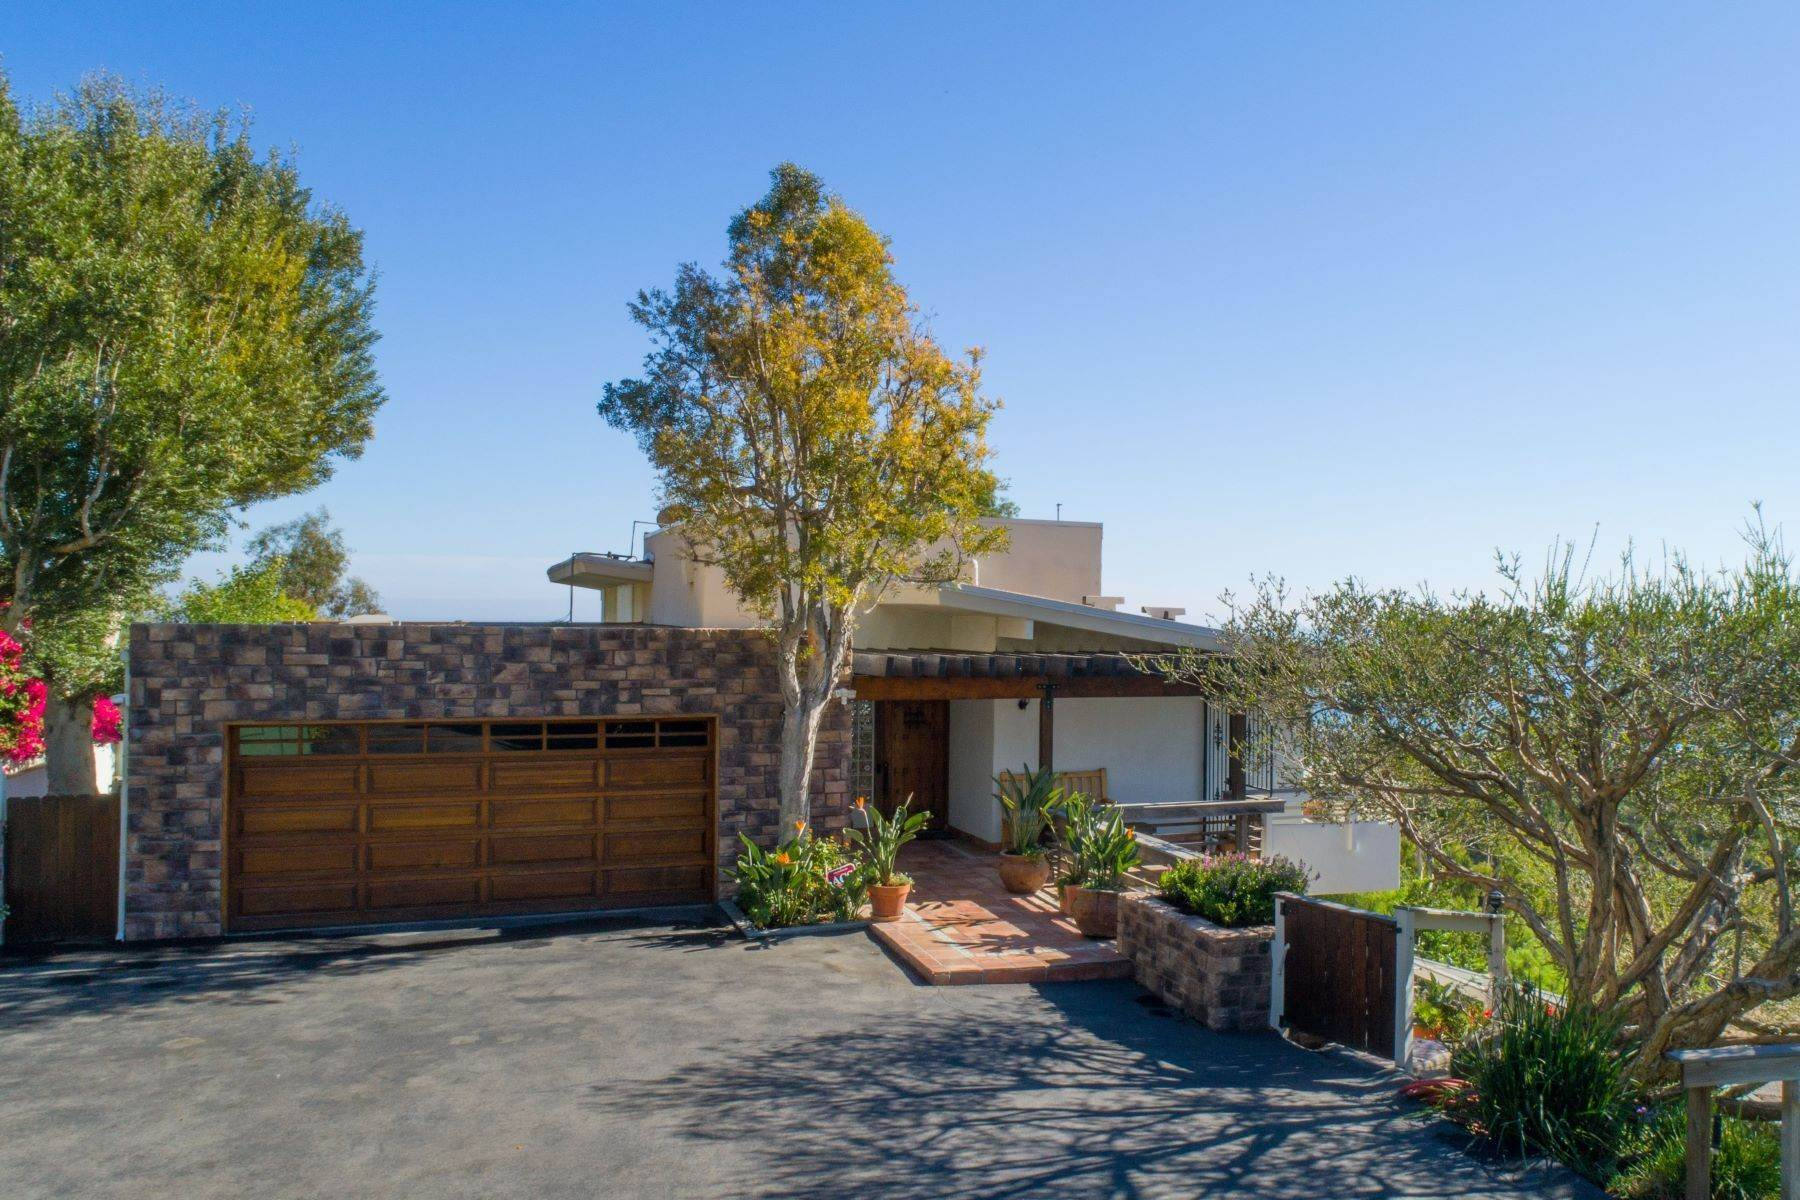 Single Family Homes for Active at Ocean View Home in Malibu 23812 Malibu Crest Dr Malibu, California 90265 United States